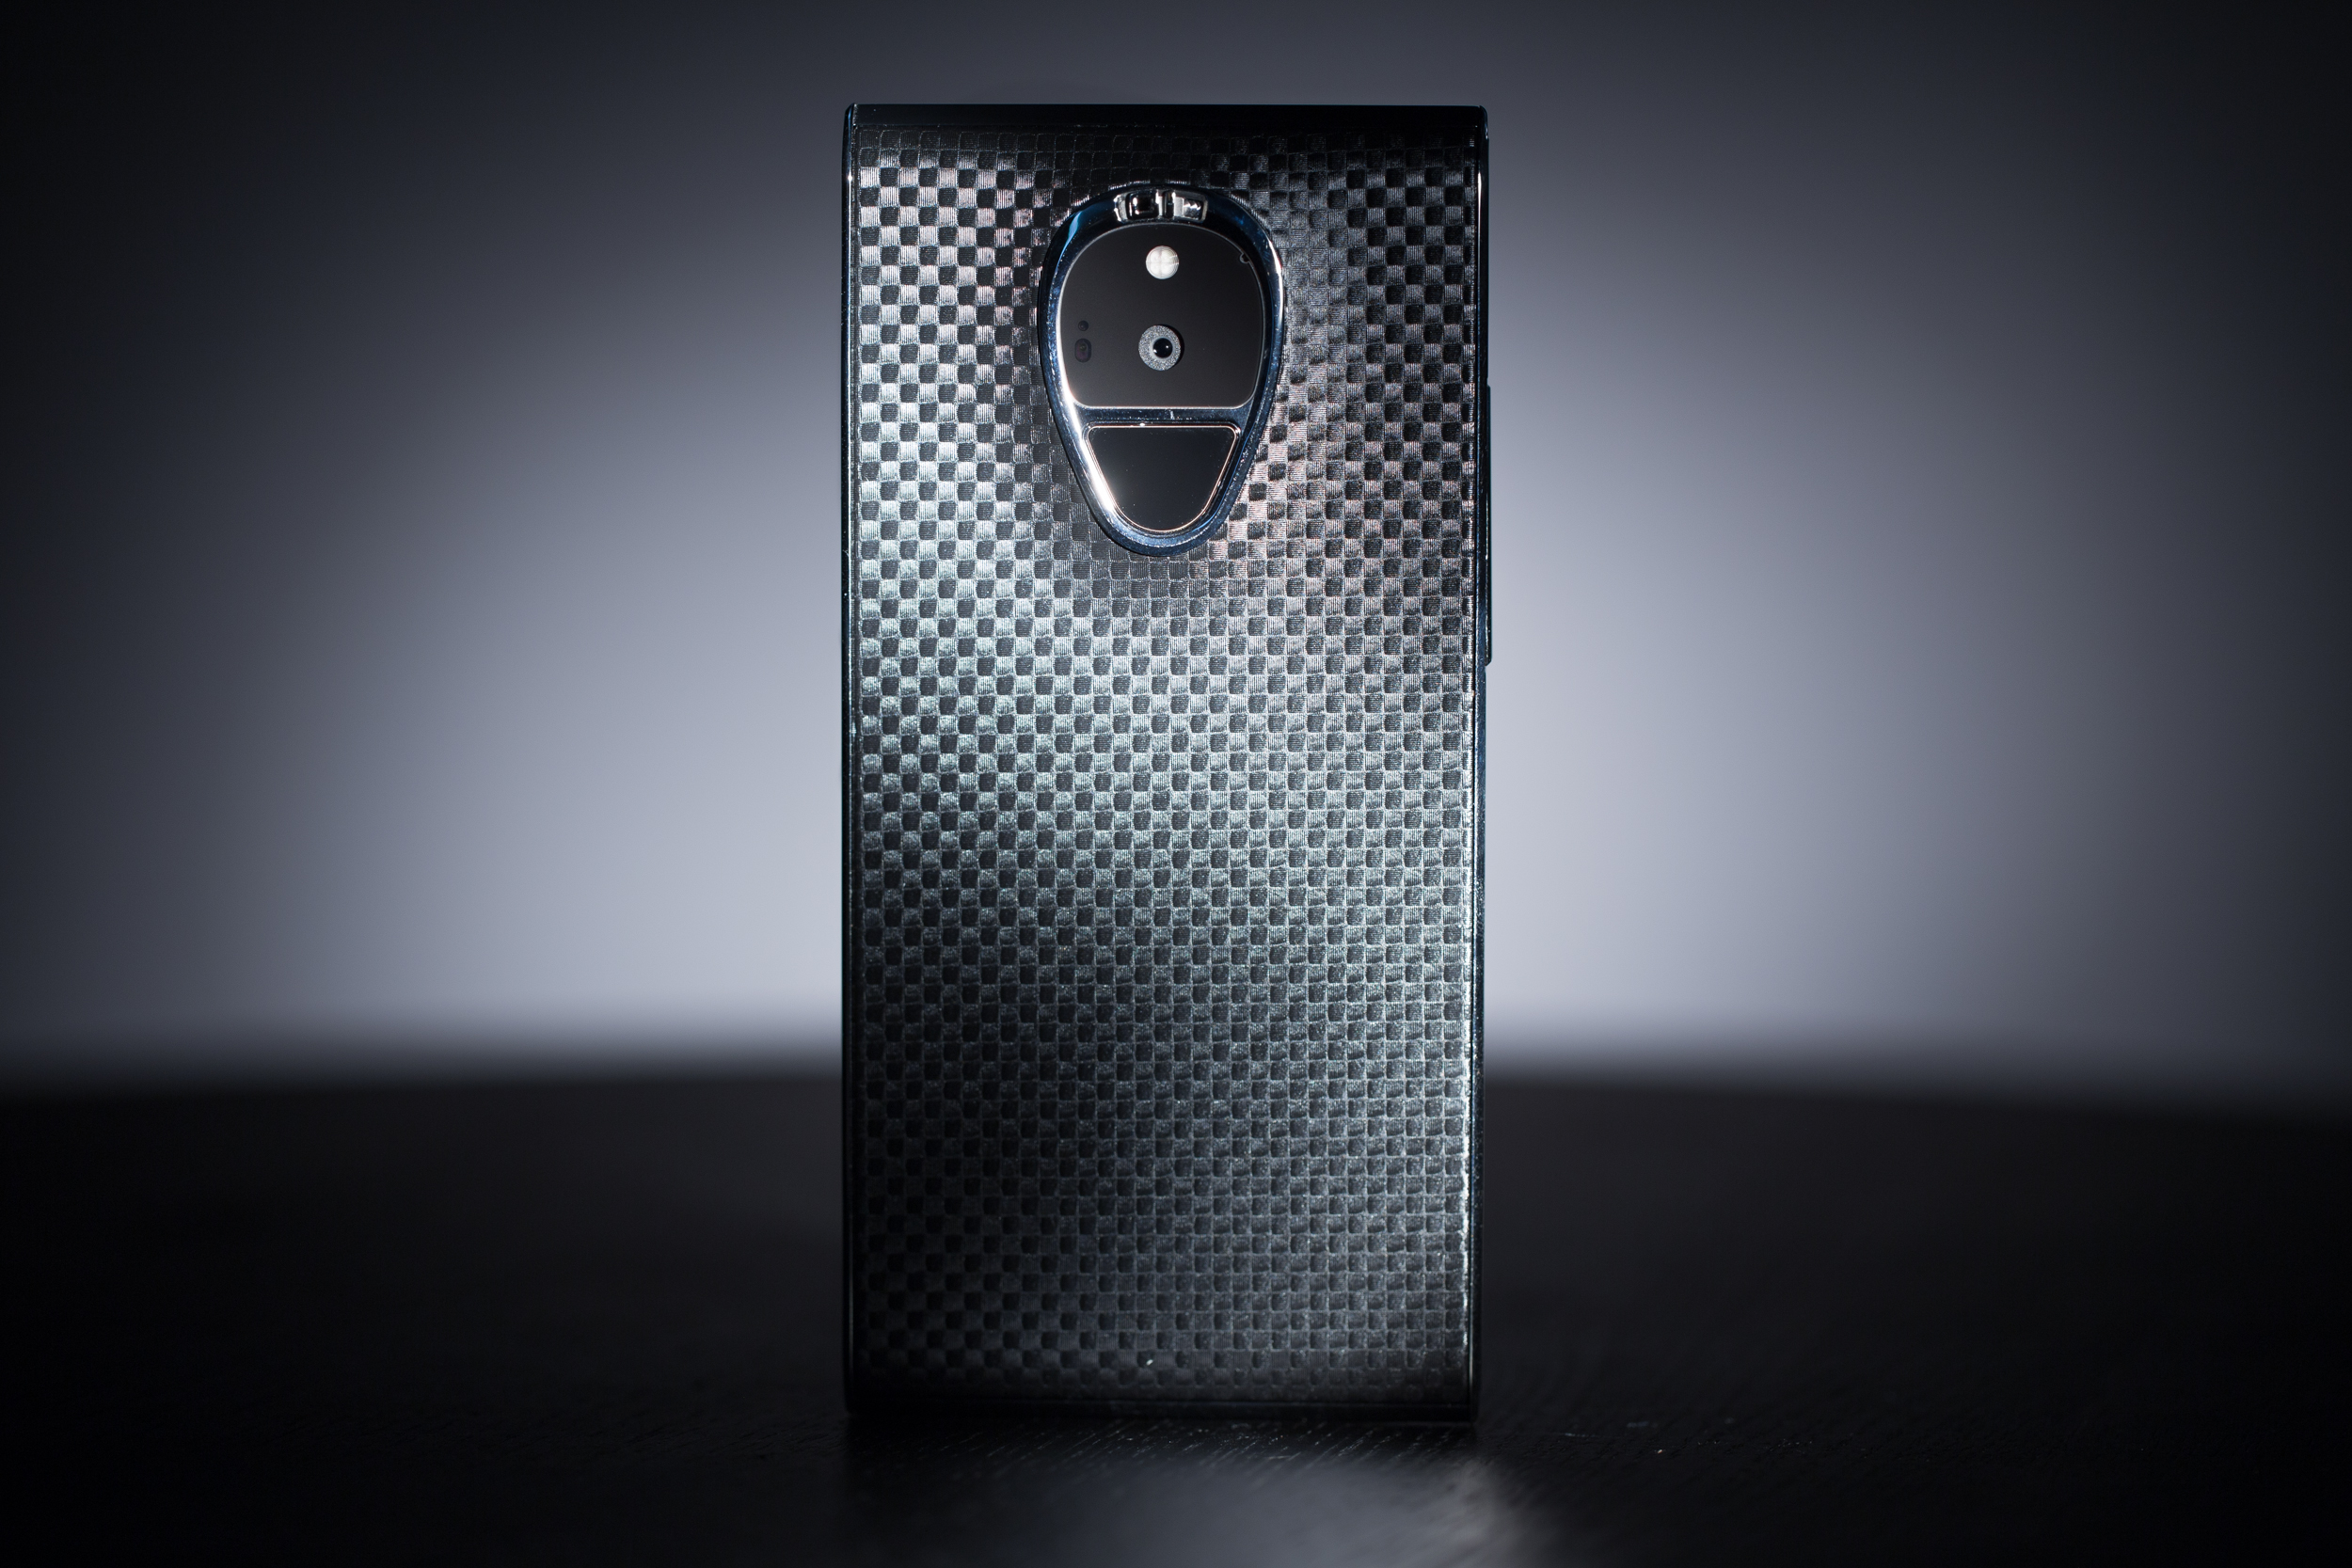 Video: Up close with the $16,000 luxury Solarin phone